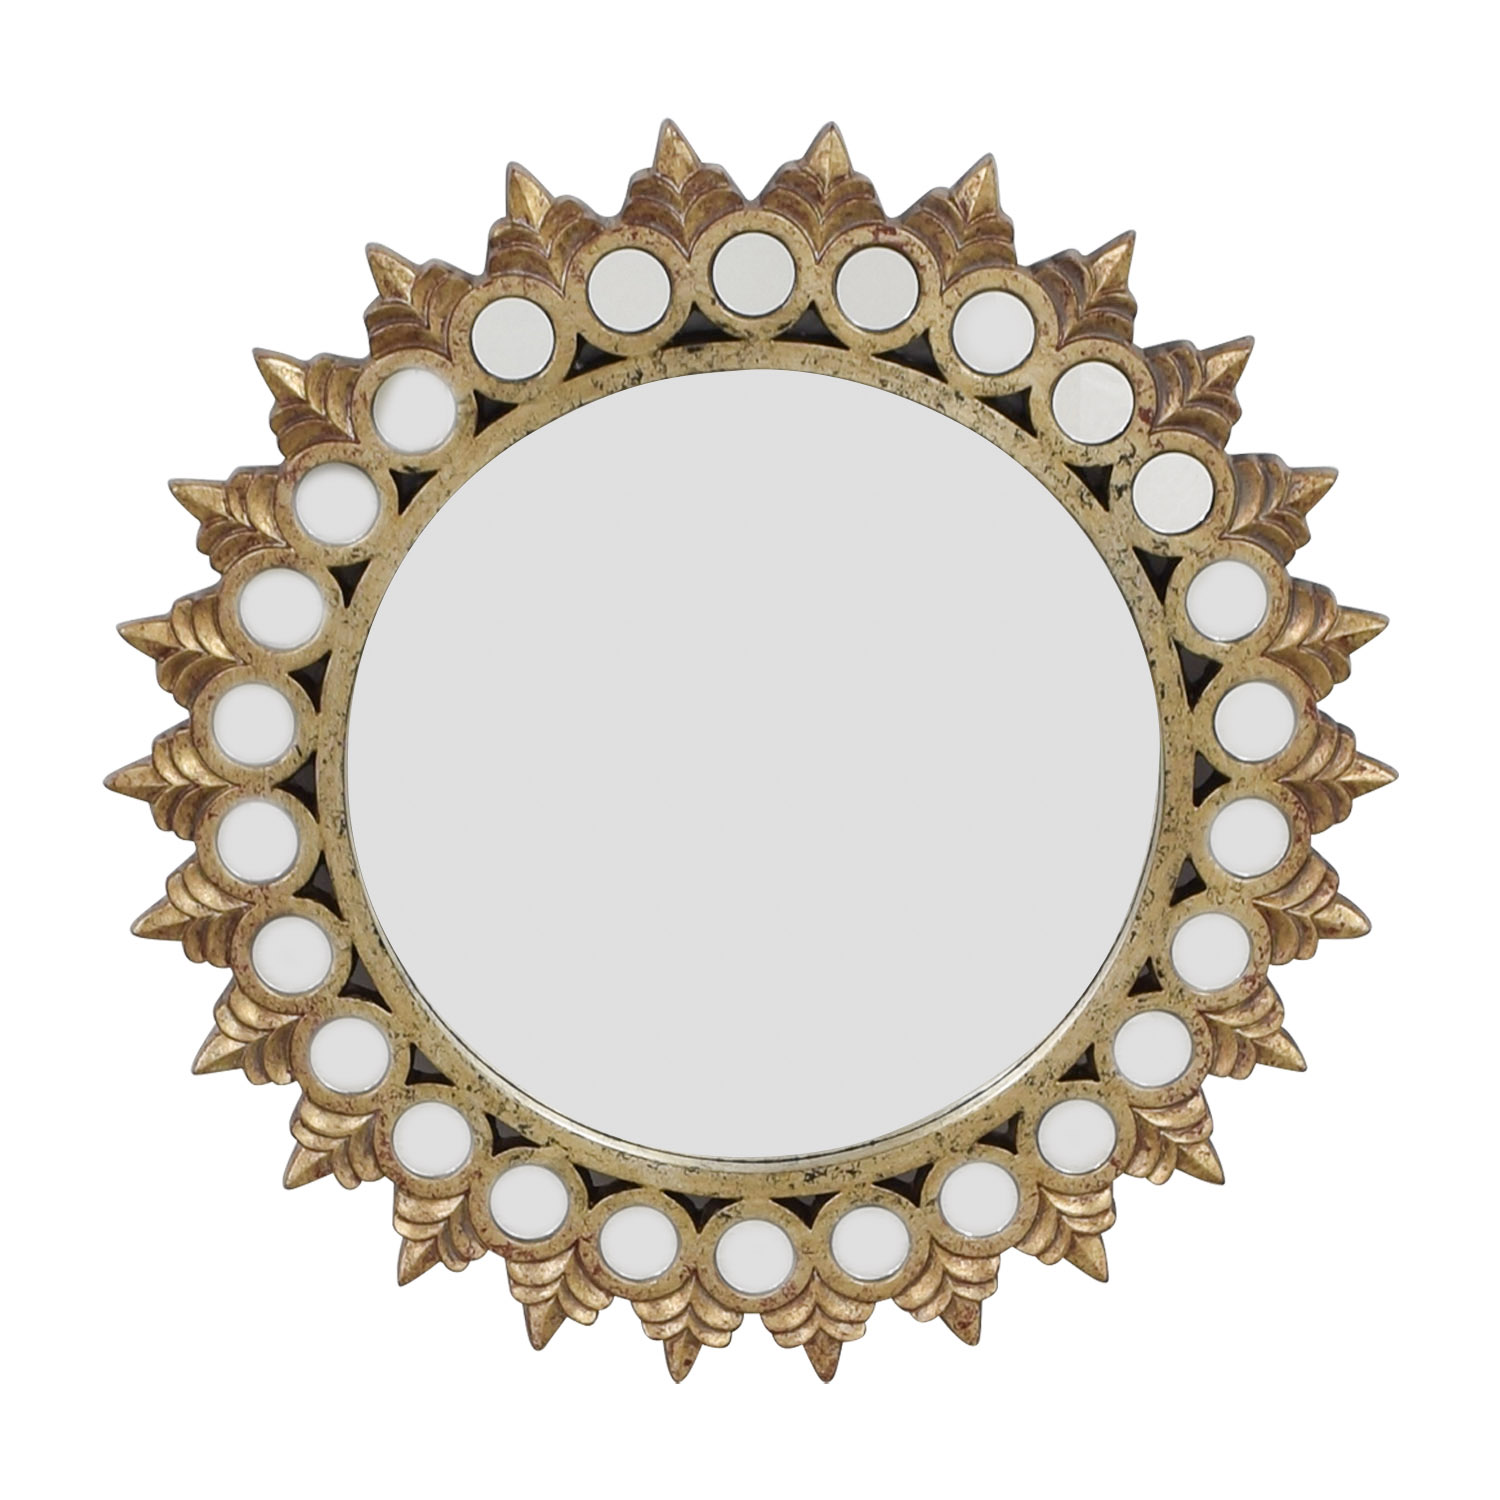 Raymour & Flanigan Distressed Gold Mirrored Frame Round Mirror / Mirrors